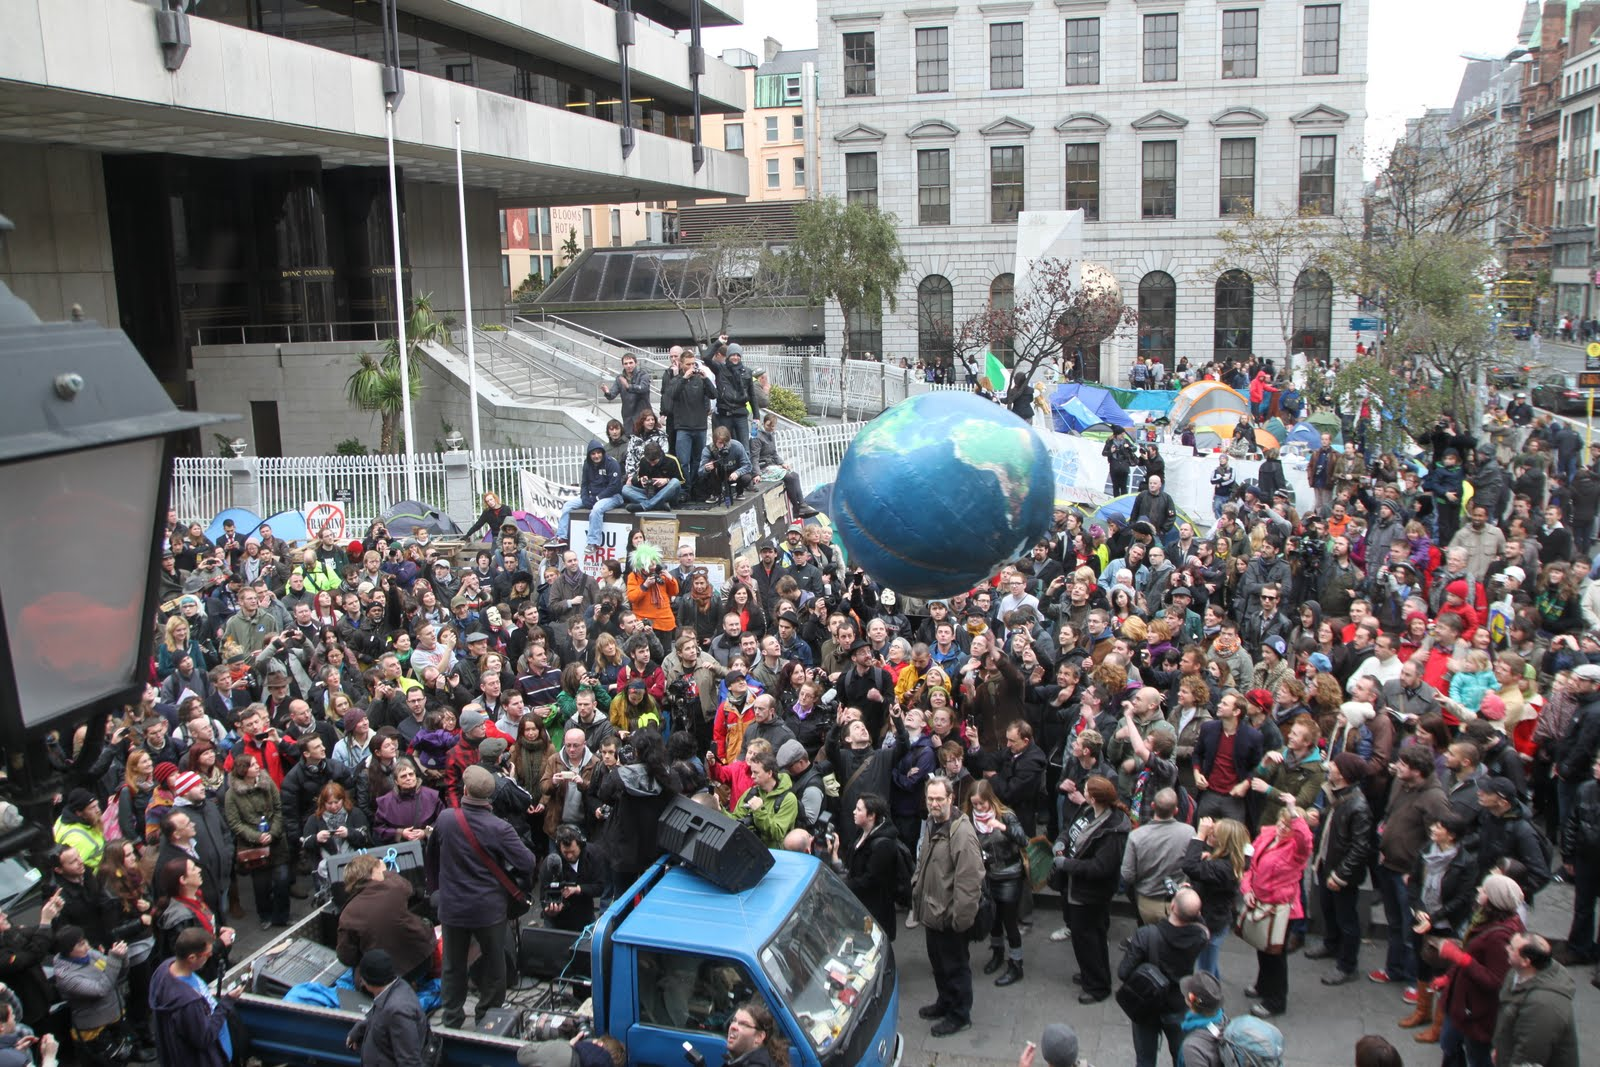 https://i0.wp.com/www.indymedia.ie/attachments/nov2011/bragg_crowd.jpg